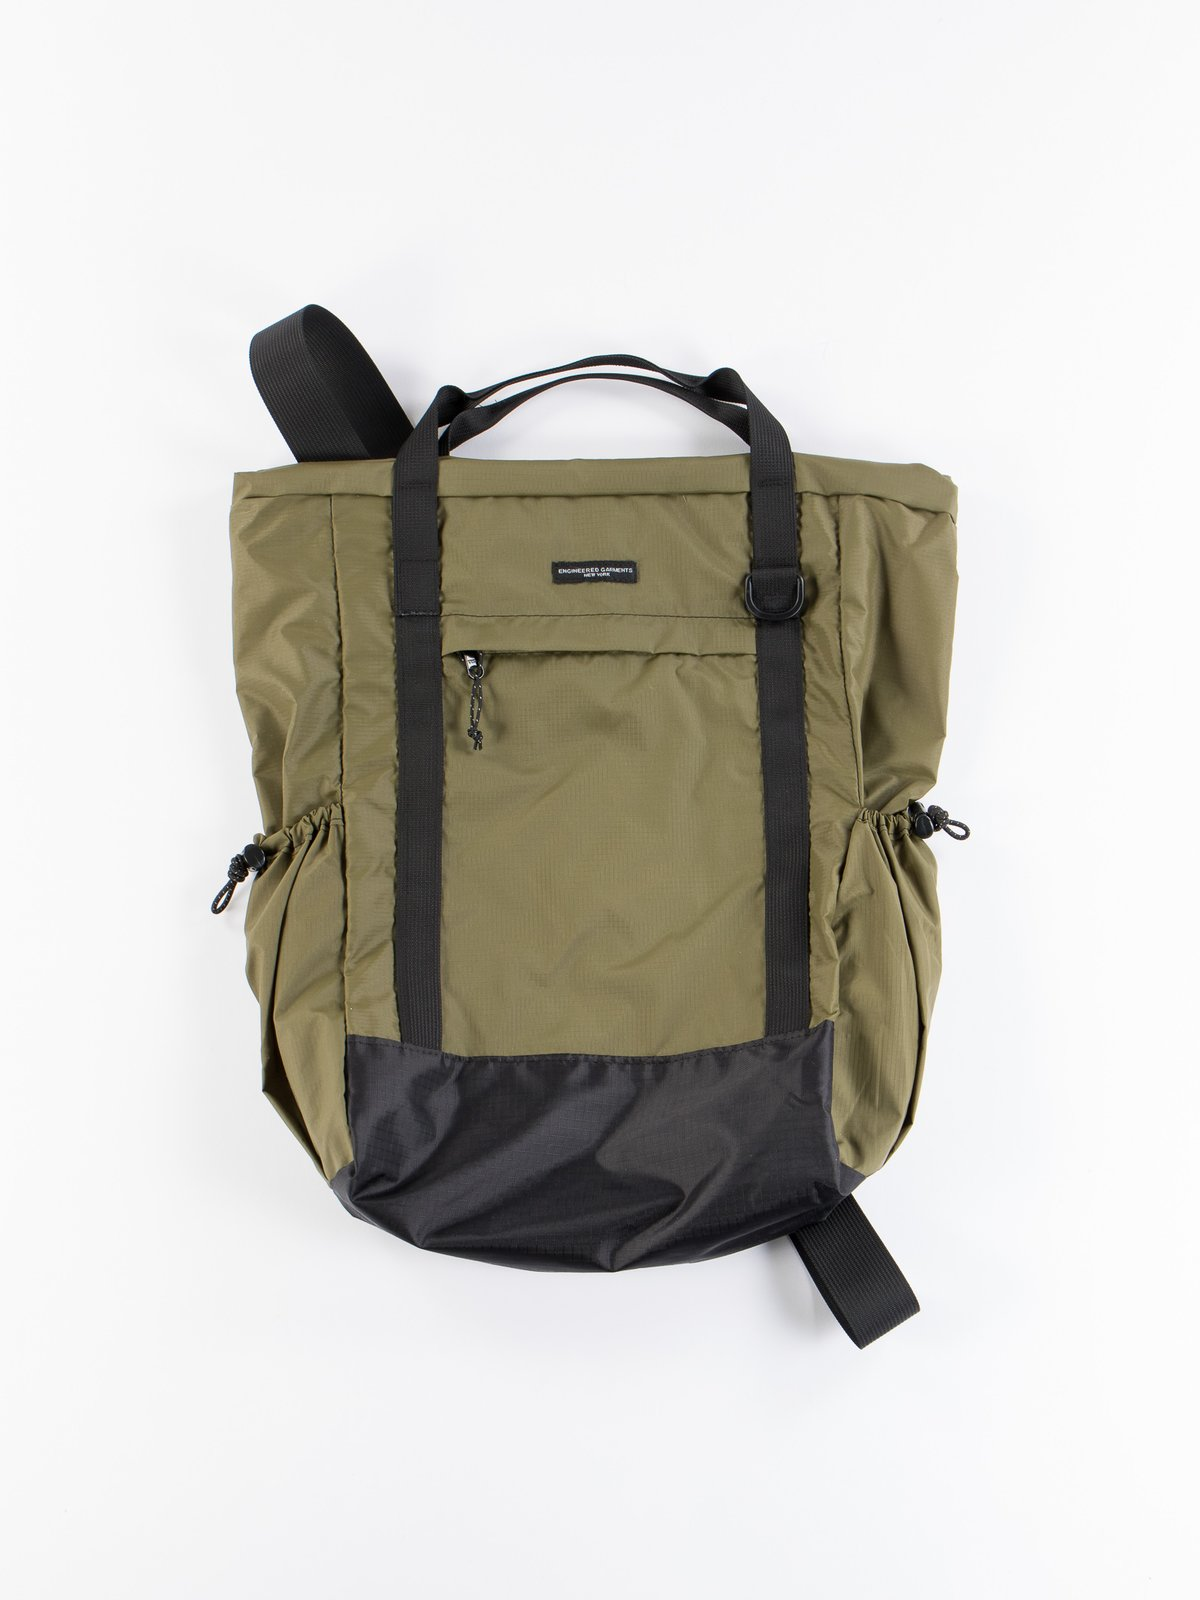 Olive Nylon Ripstop UL 3 Way Bag - Image 1